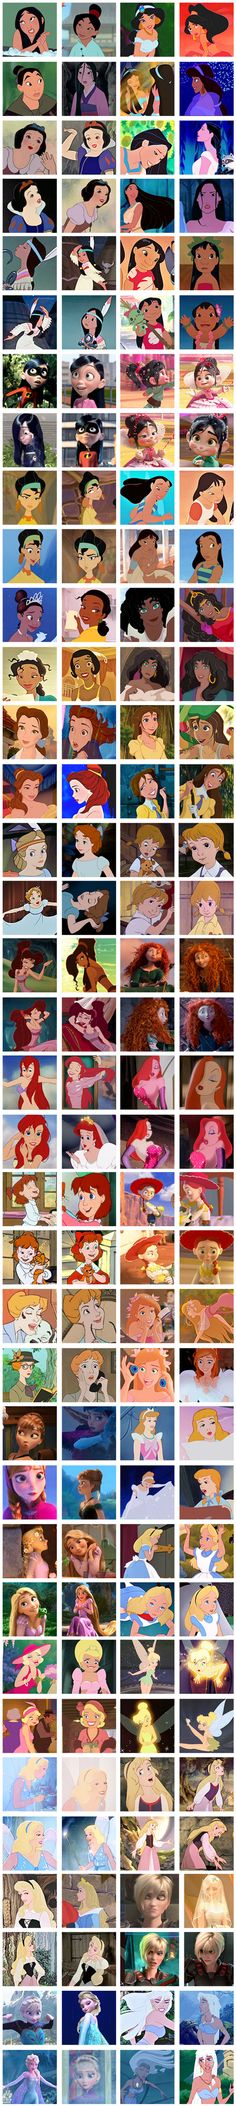 All the Disney ladies. Starts w/ black hair then goes white :)